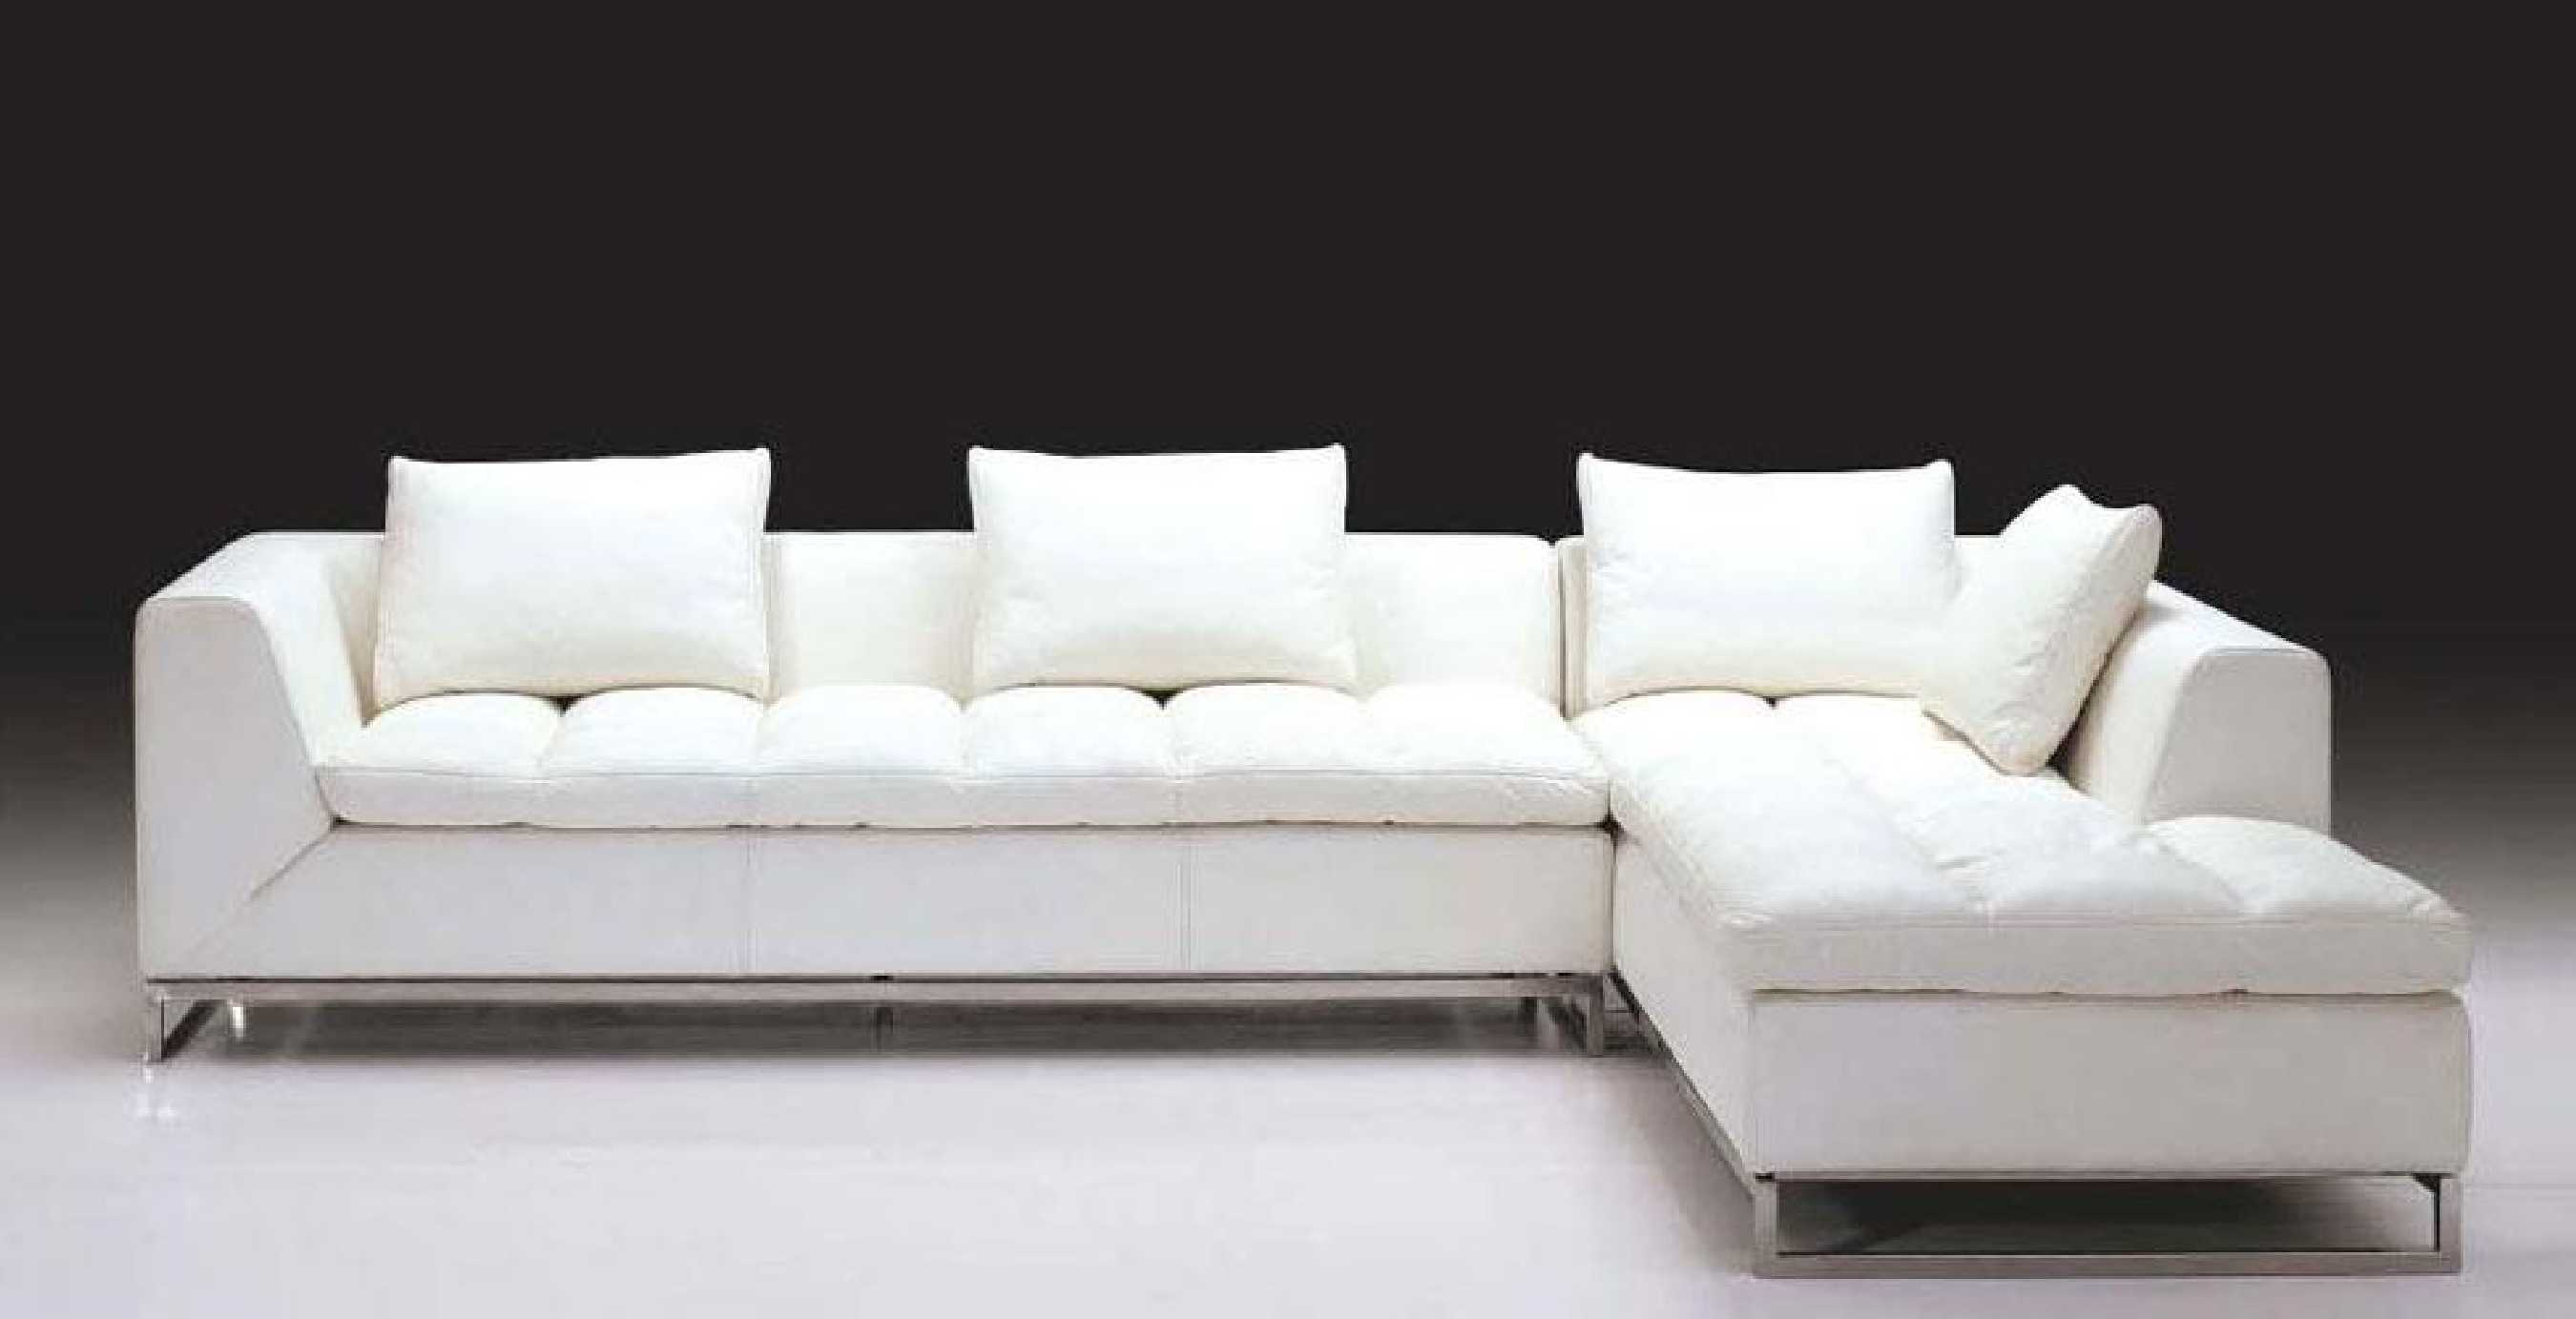 Breathtaking L Shaped Couch For Home Decoration With L Shaped Couch Covers